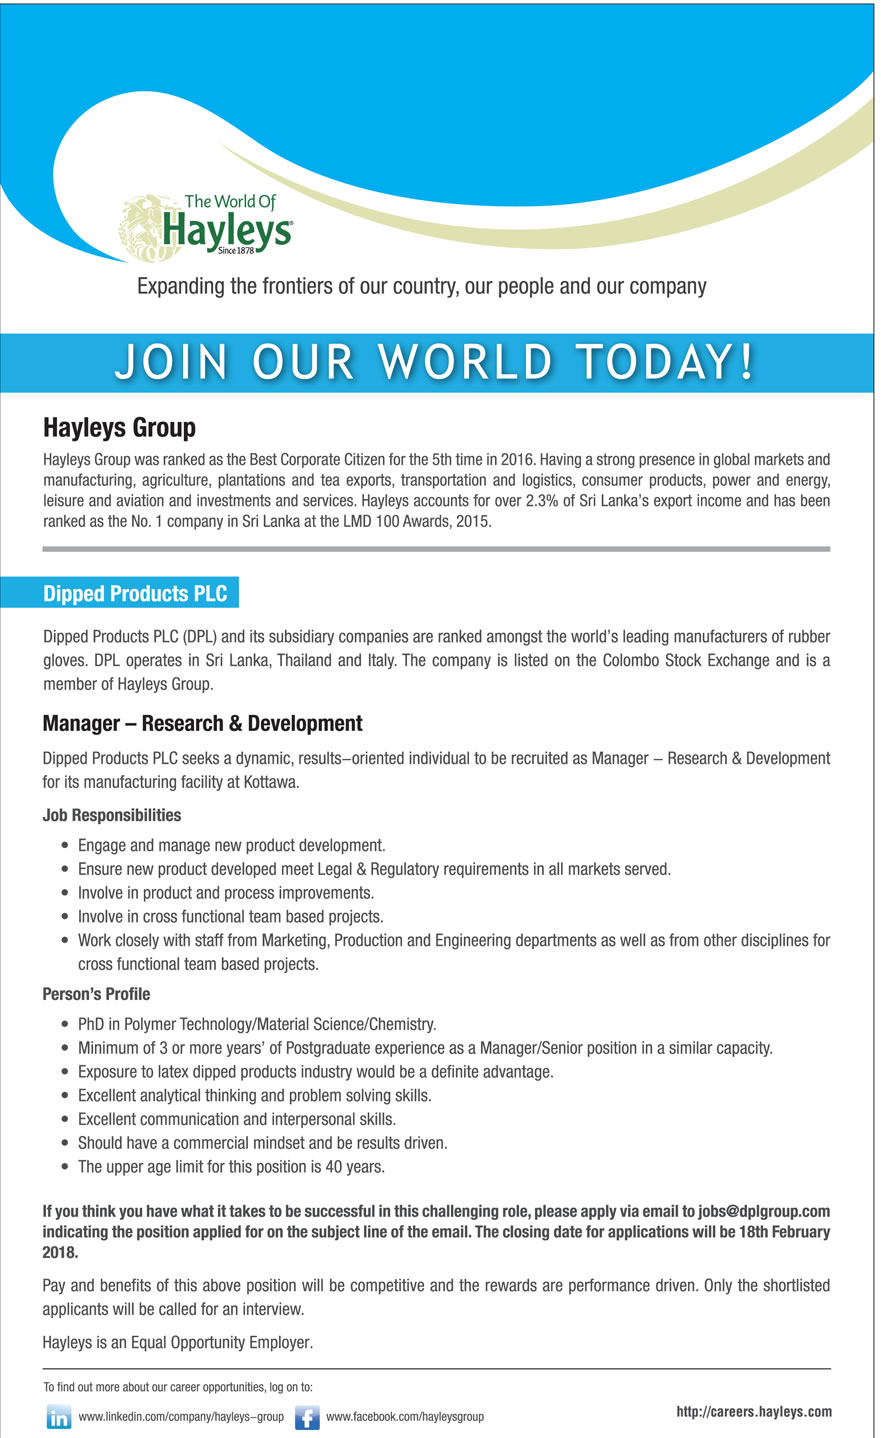 Manager - Research & Development